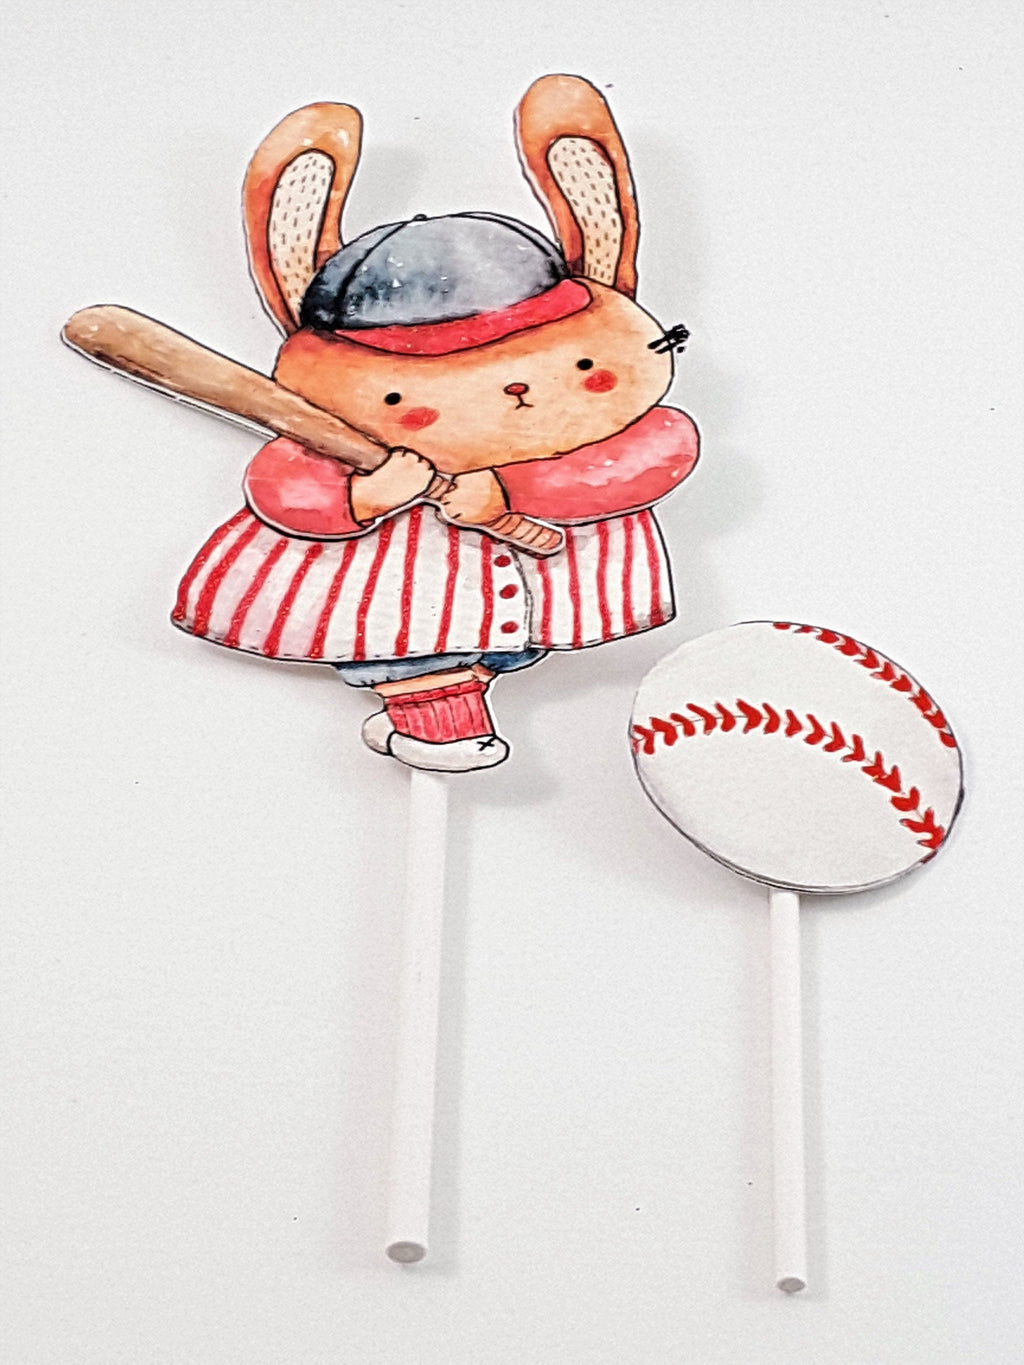 Baseball Cake Topper 2 Piece Set with Watercolor Bunny Rabbit Batter and Ball, Birthday Party Decor - TheLastWordBish.com